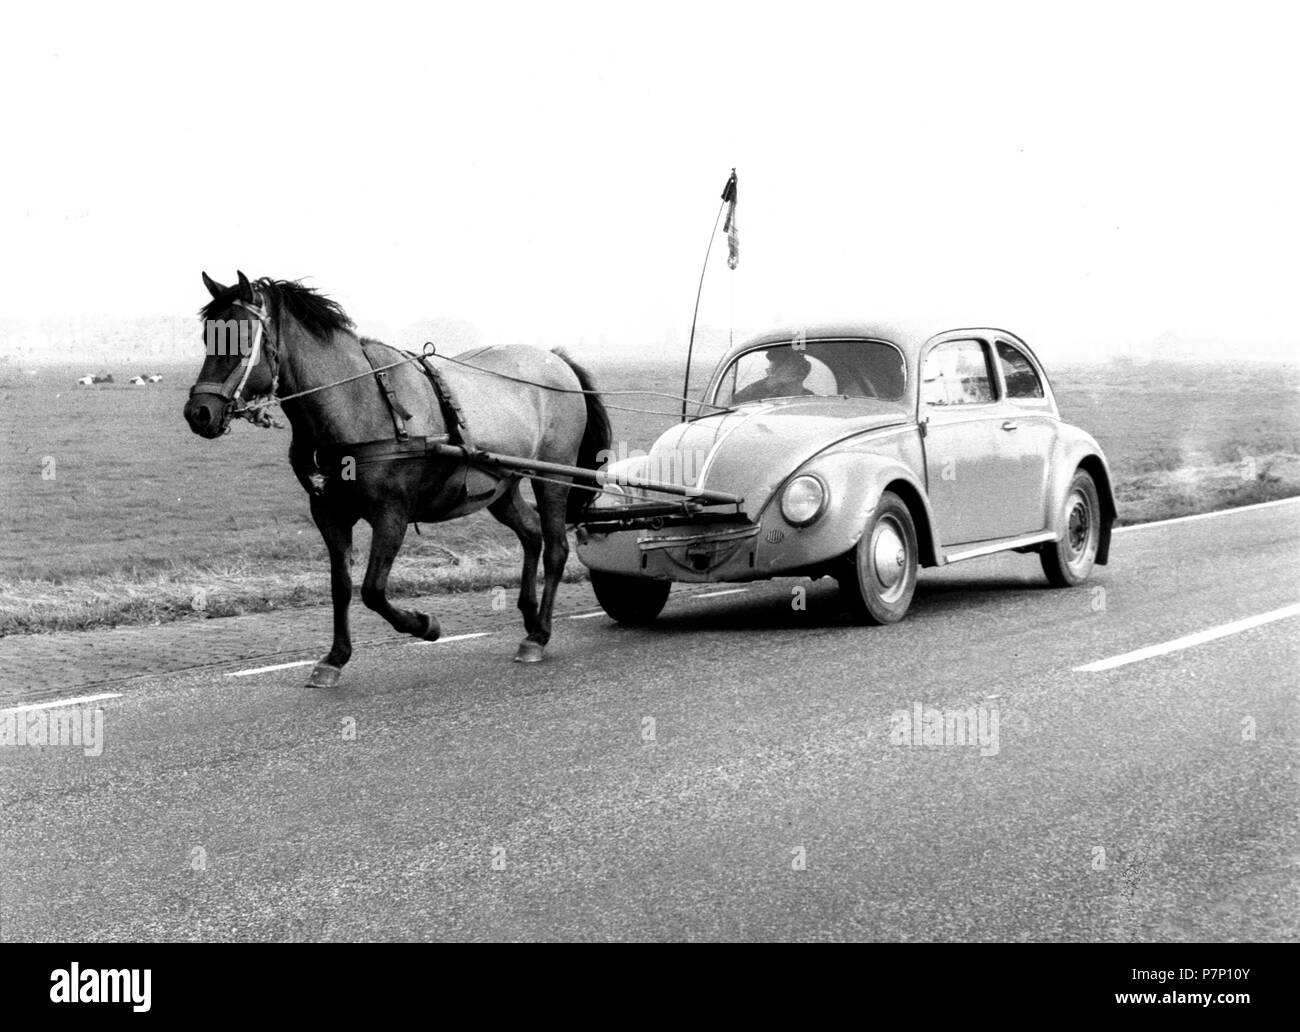 Horse pulls a VW Beetle, a PS, Mexico City, Mexico Stock Photo